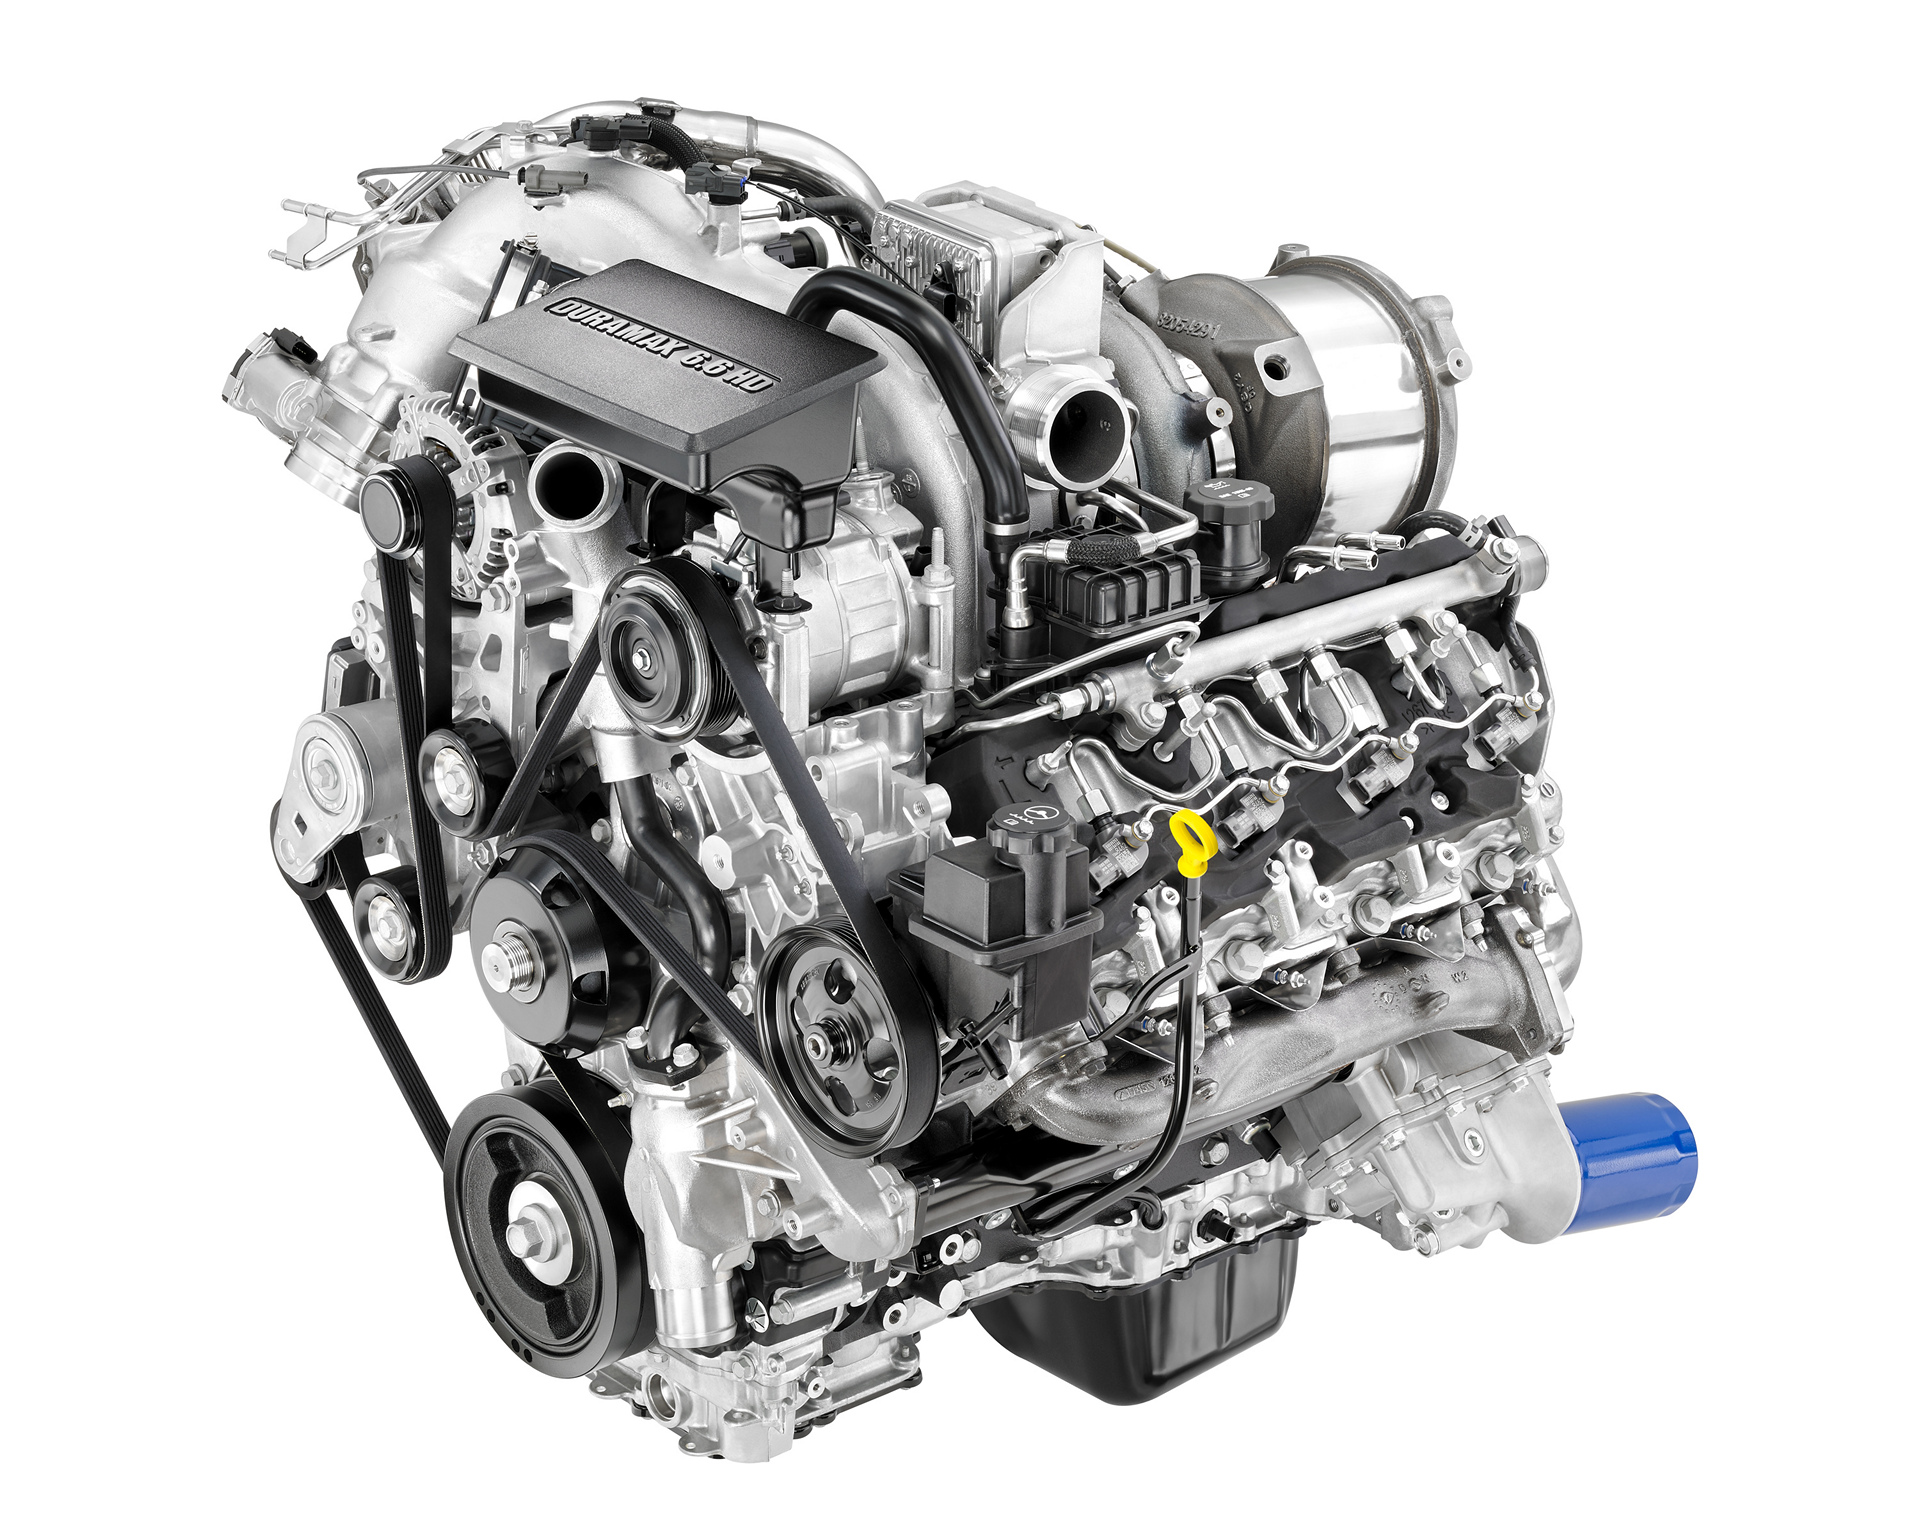 New Duramax 6.6L Diesel Introduced on 2017 Sierra HD © General Motors